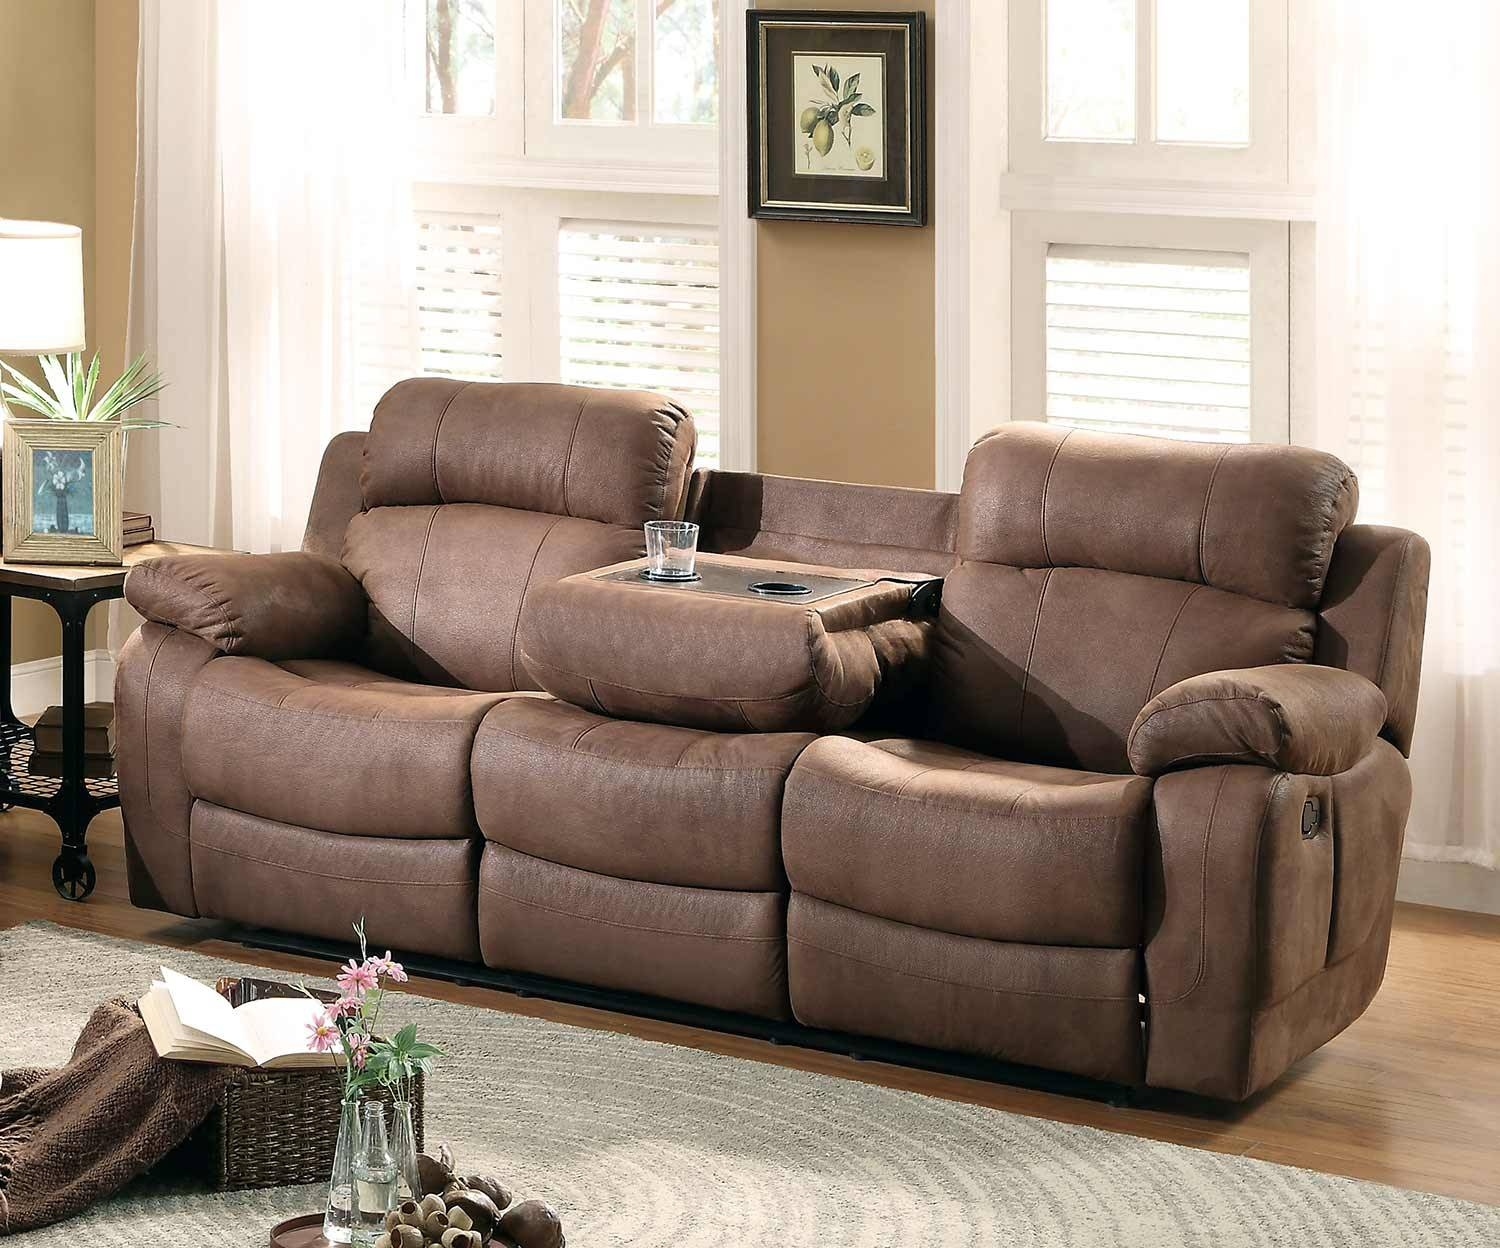 Homelegance Marille Double Reclining Sofa With Center Drop-Down throughout Sofas With Cup Holders (Image 6 of 15)